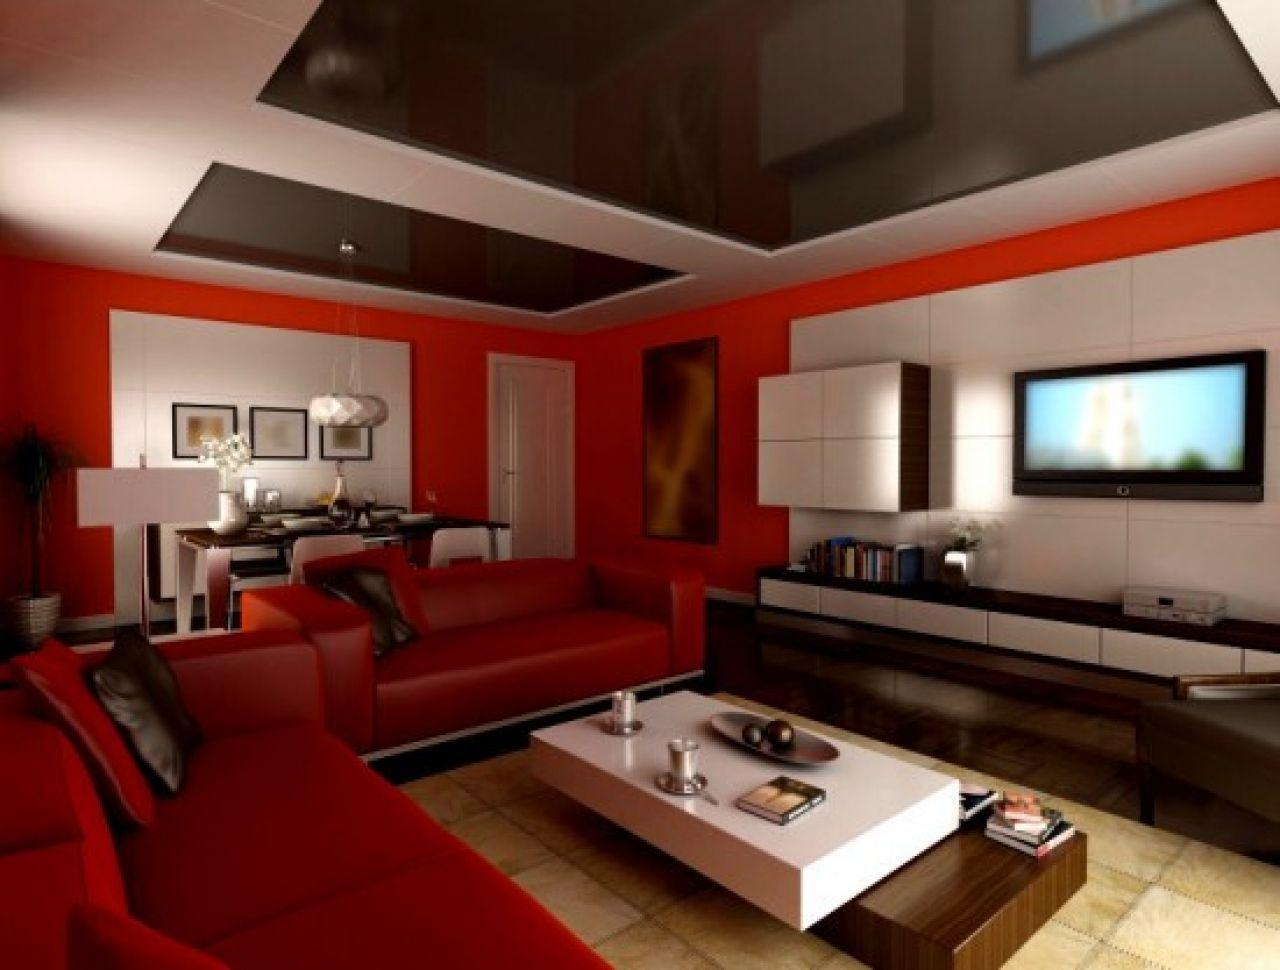 Paint Colors Astounding Small Modern Red Living Room Ideas With Mirrored Glass Ceiling L Shape Leather Sectional Sofa Stylish Coffee Table